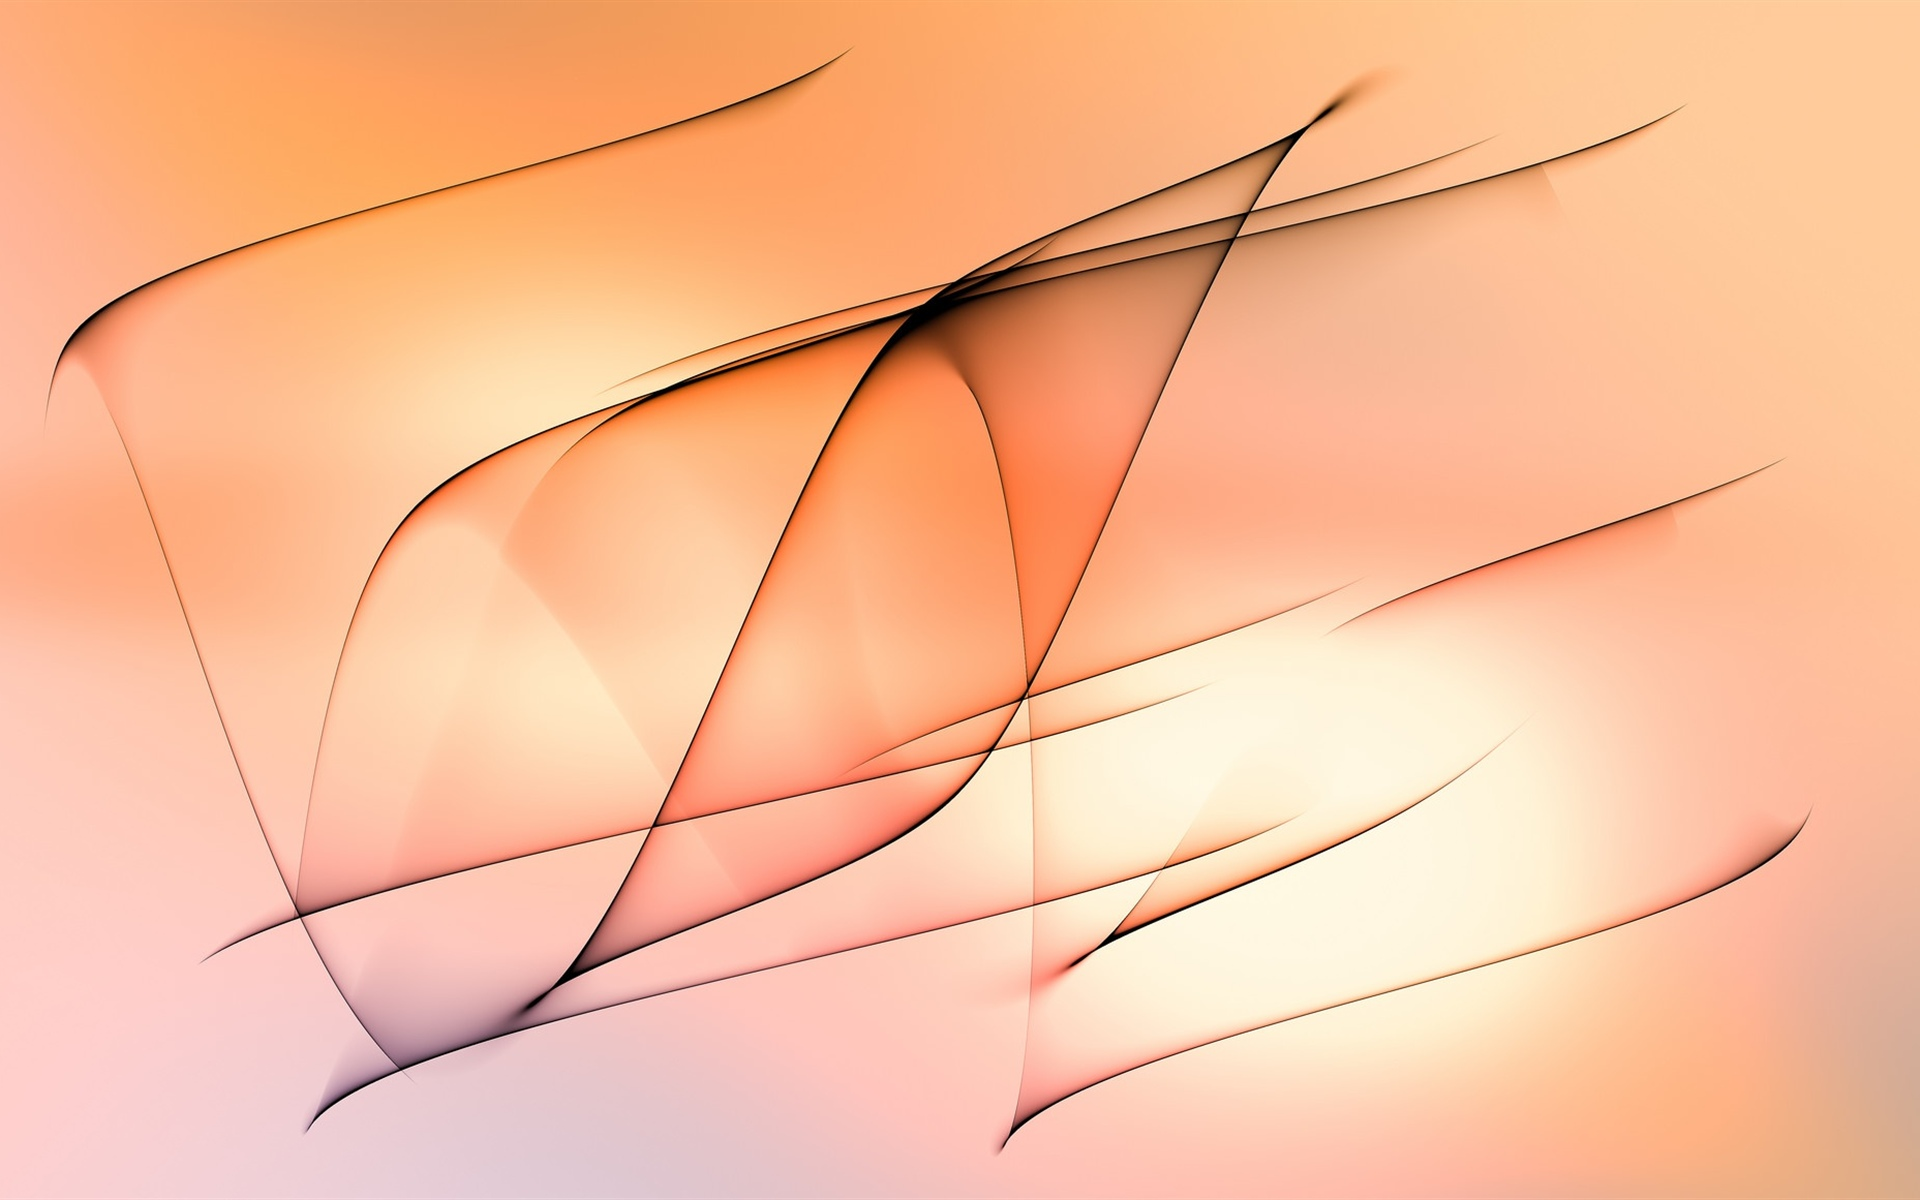 Abstract lines, orange background 1920x1200 wallpaper